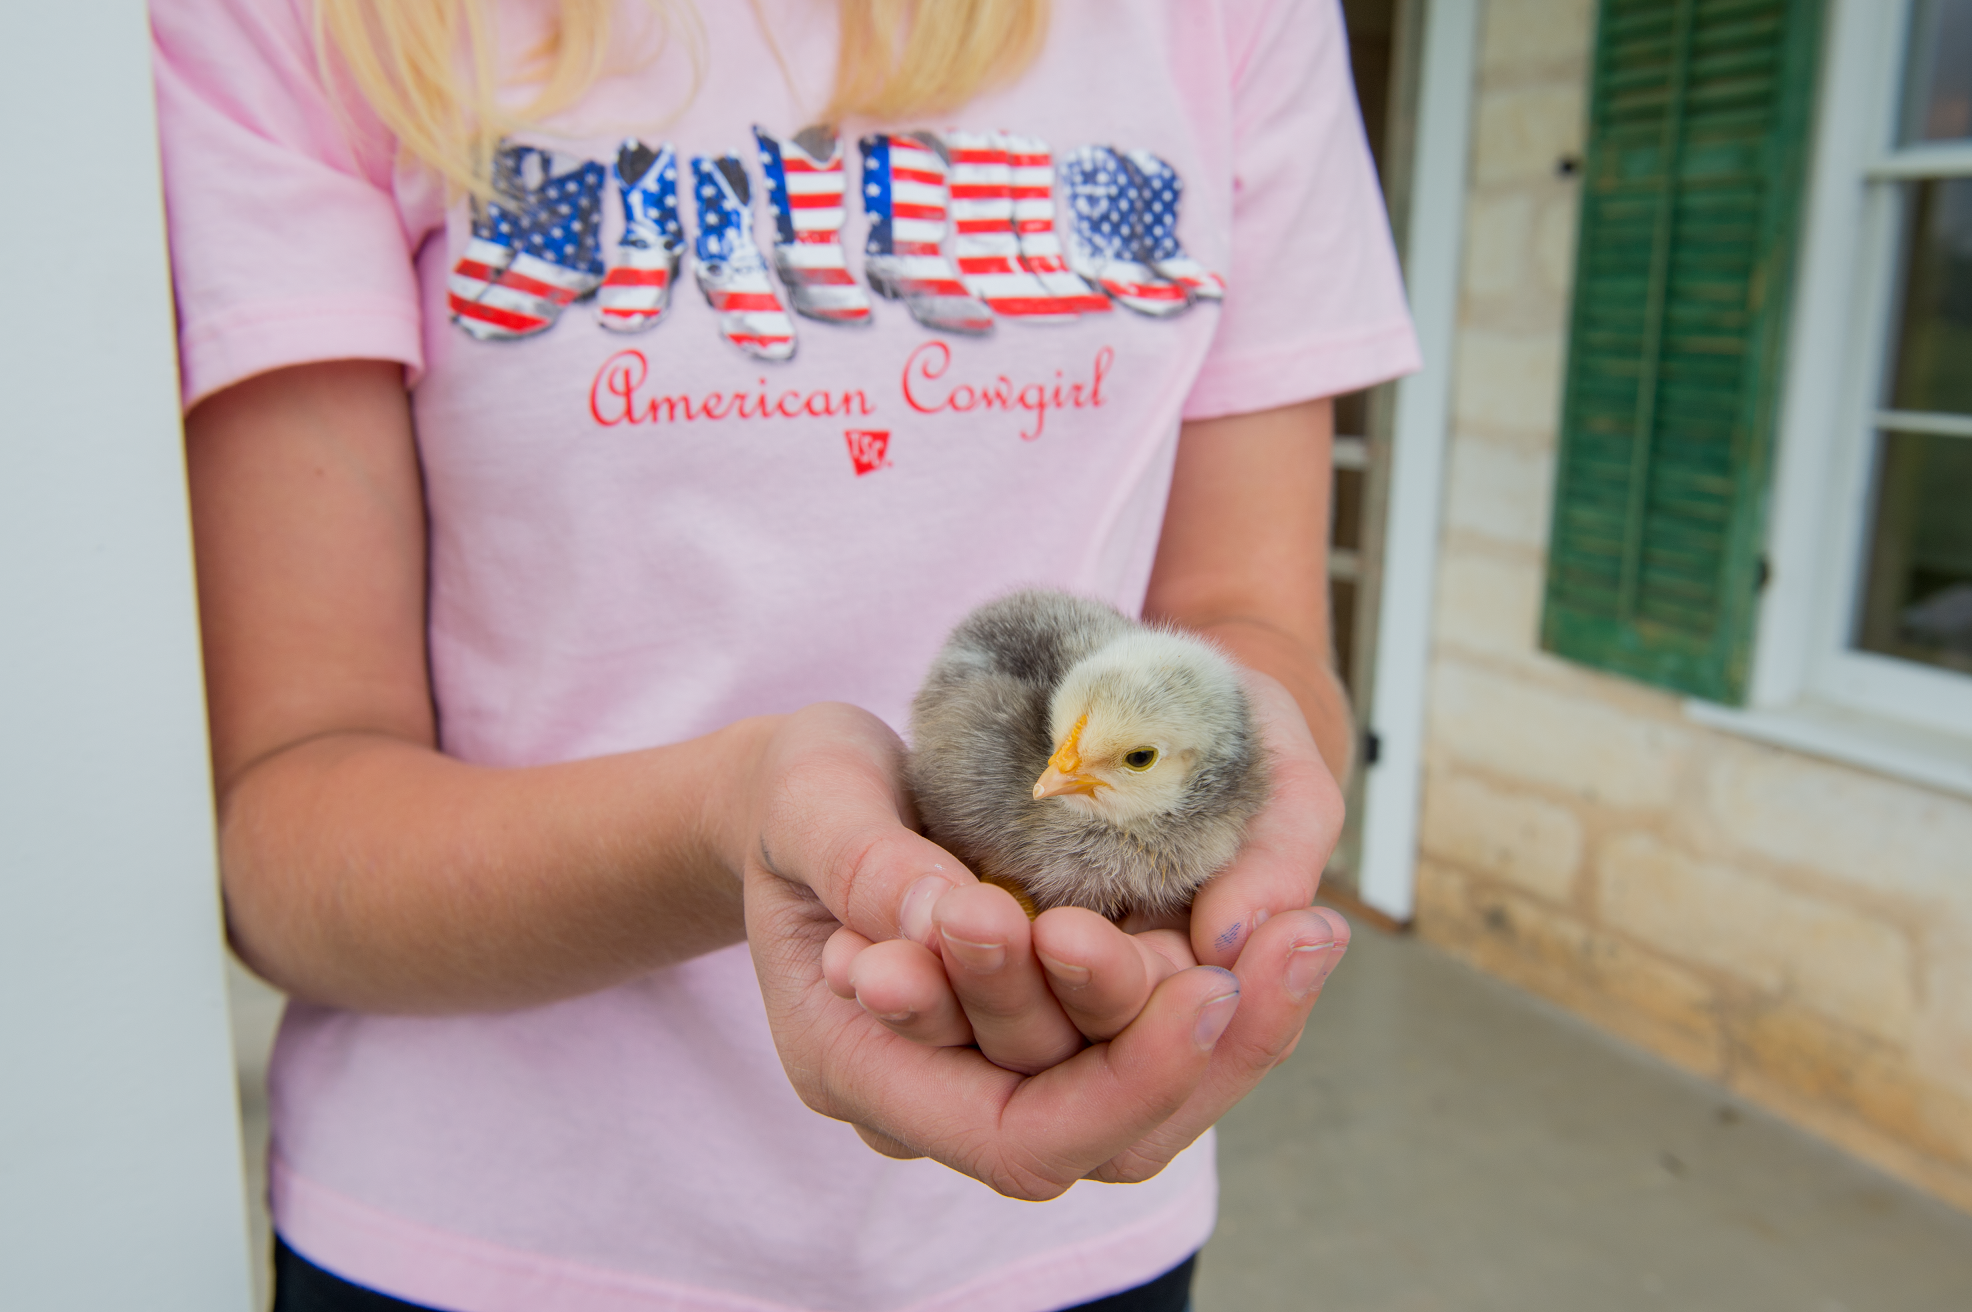 Buy Baby Chicks Ducklings And Turkey Poults Online With 0 Shipping 20 60 Breeds That Update Daily Raising Turkeys Buying Baby Chicks Urban Chickens